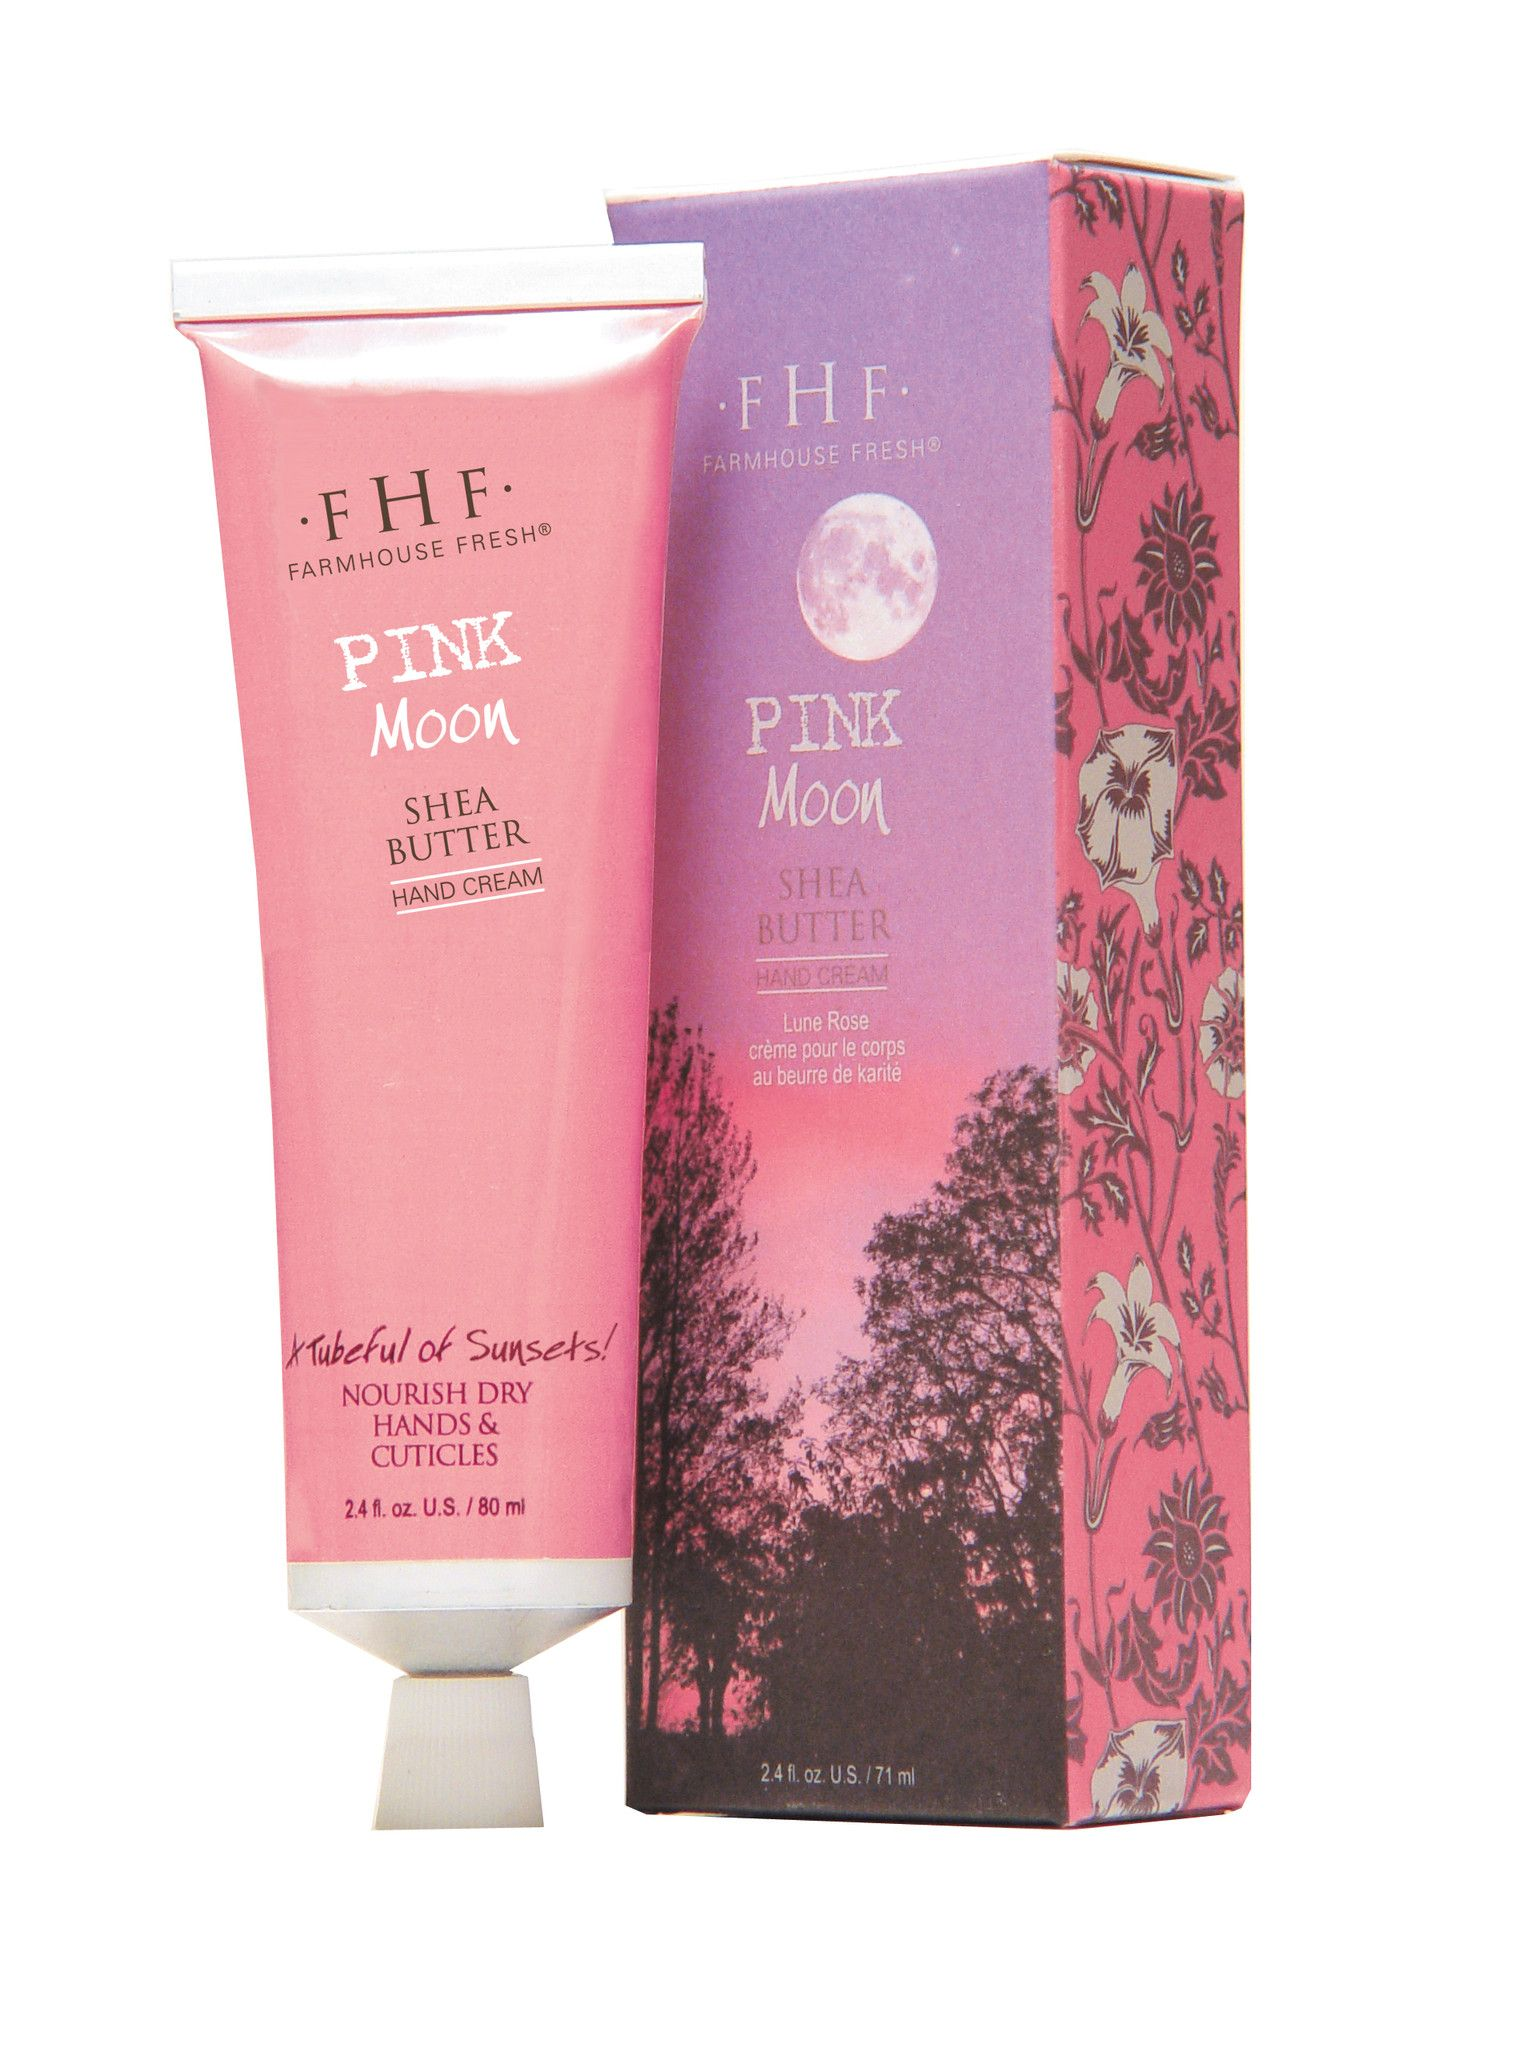 Pink Moon Shea Butter Lotion from FarmHouse Fresh Goods